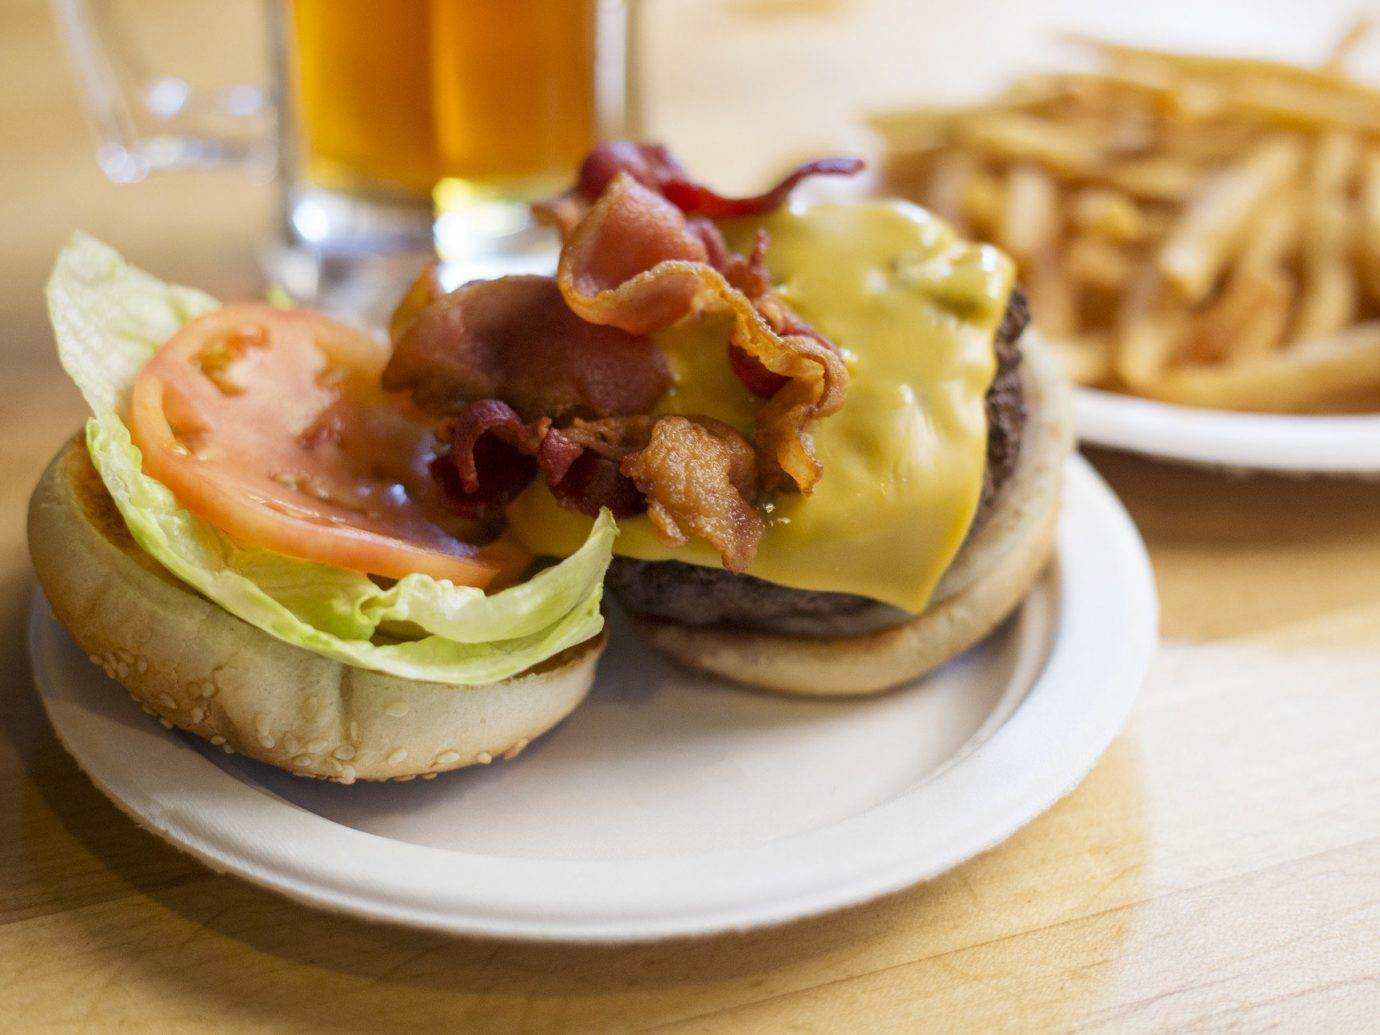 Budget food table plate cup hamburger dish meal cheeseburger slider fries meat veggie burger breakfast sandwich lunch produce fast food cuisine snack food